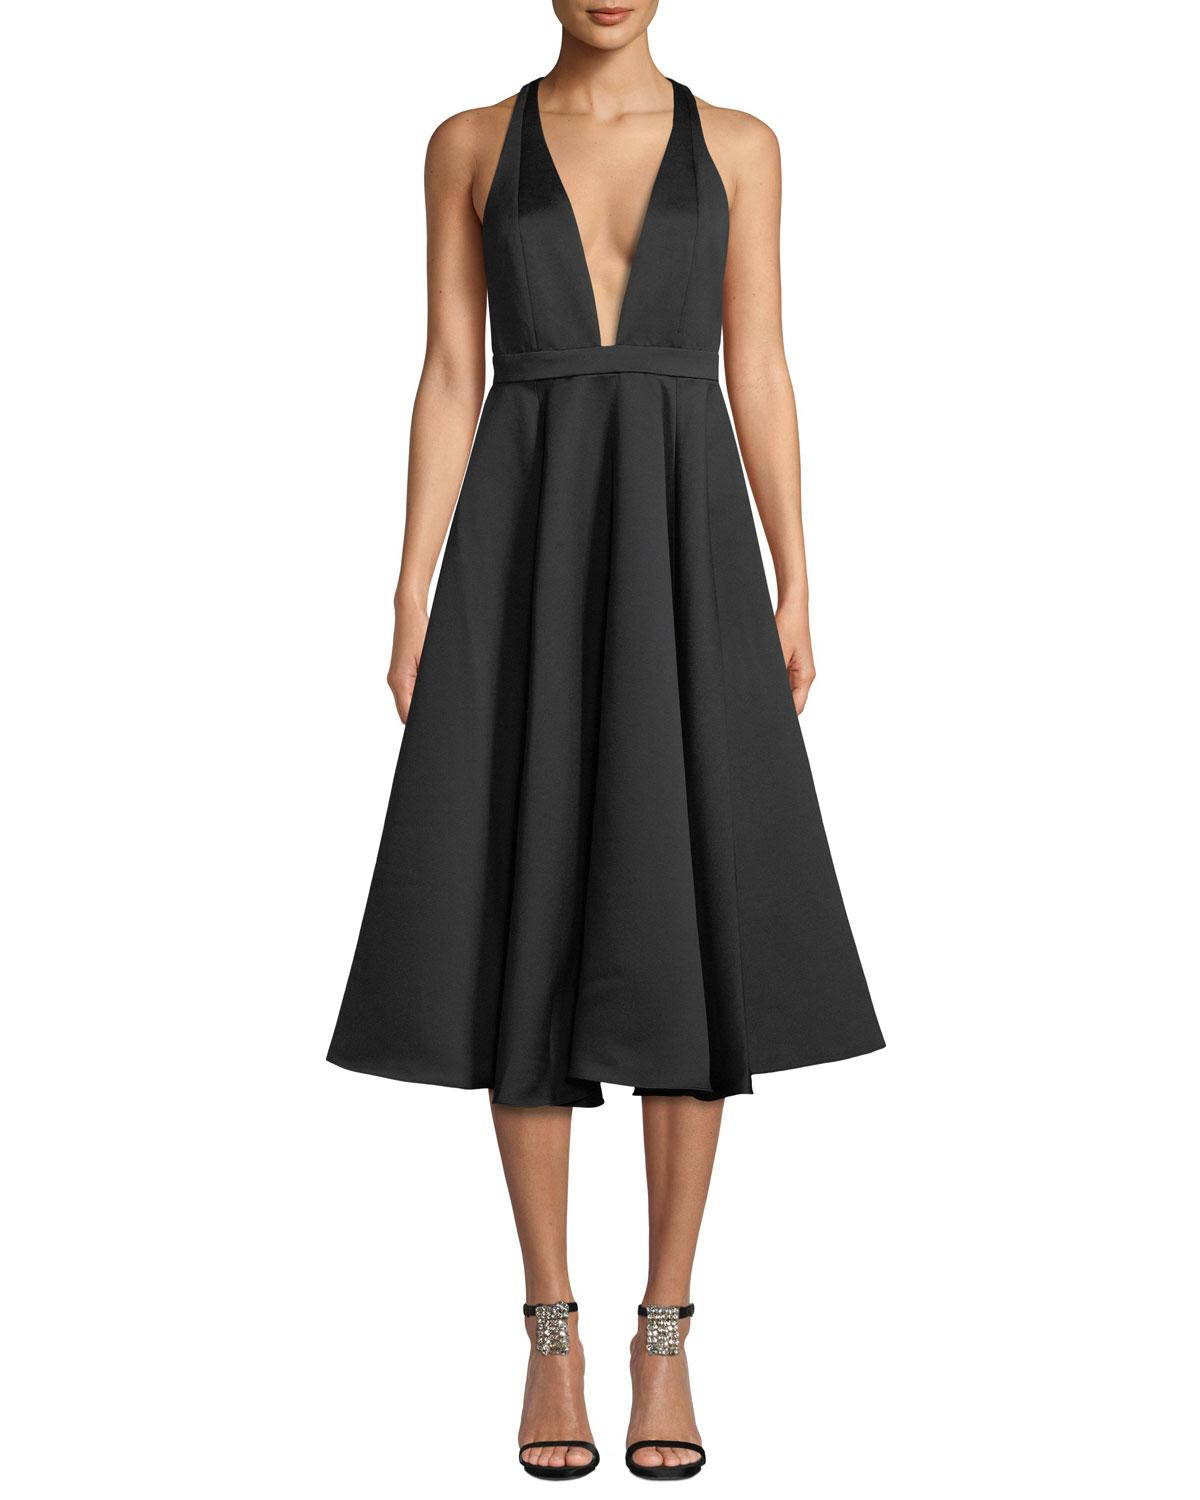 a1b0b9fe443 Jay Godfrey Sewelyn Plunge-Neck Fit-And-Flare Dress In Black